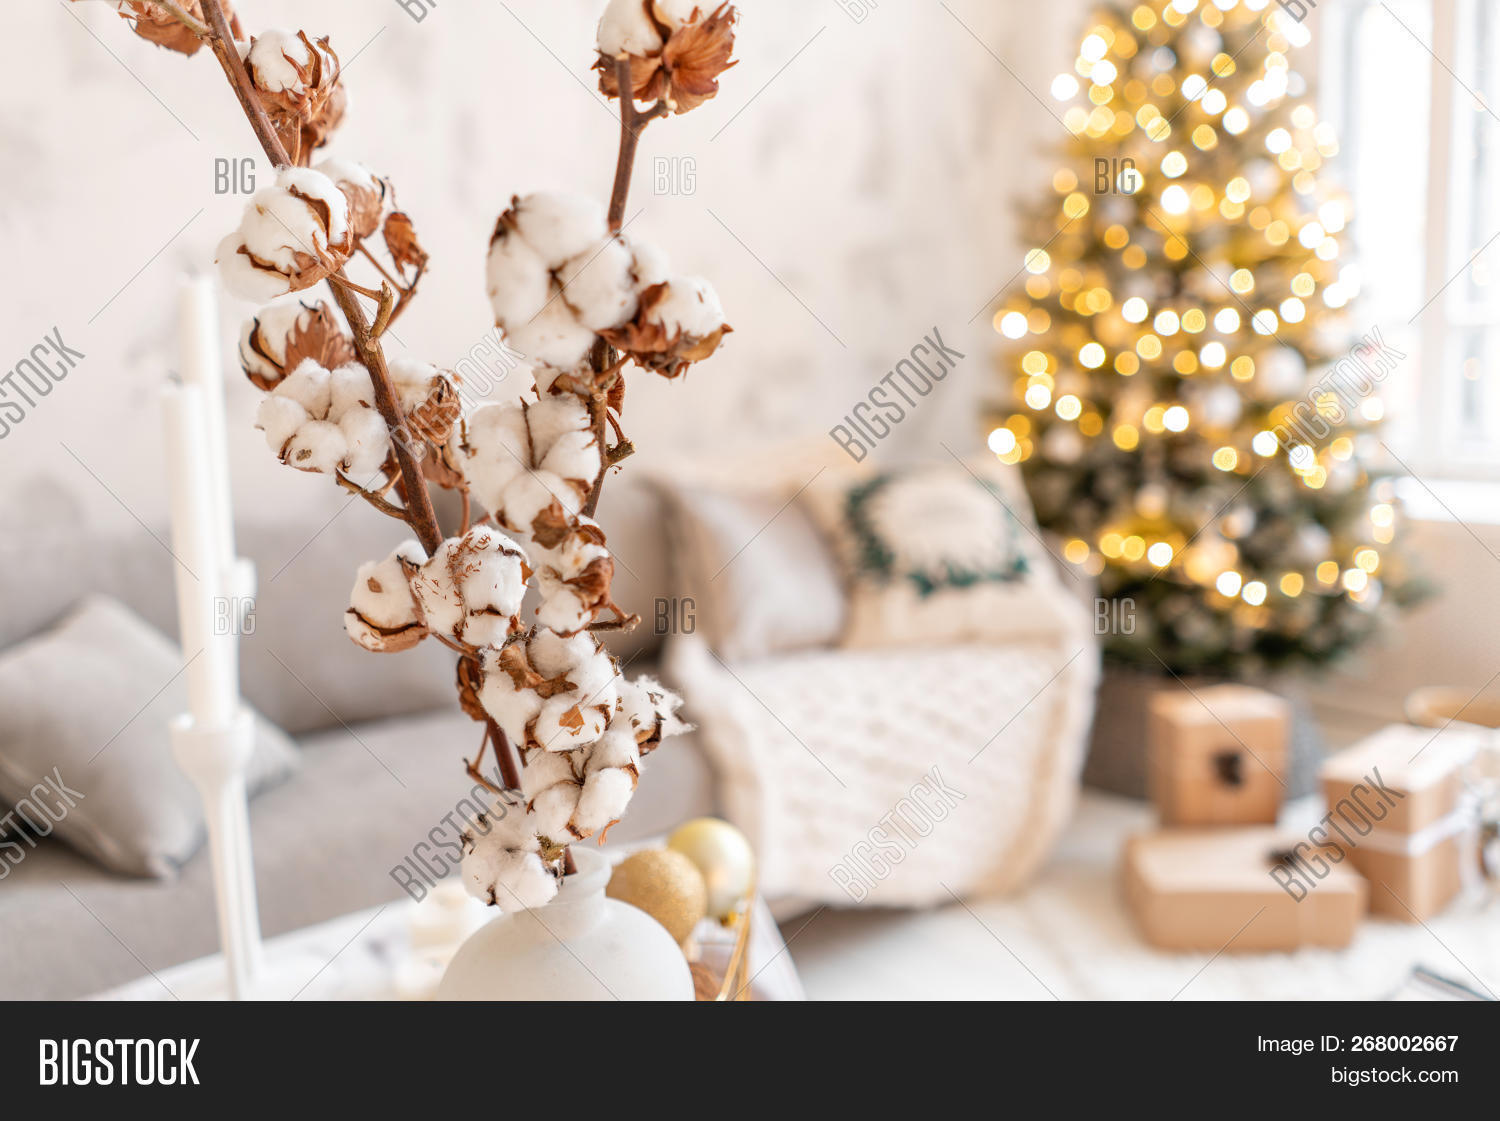 Vase Cotton Branches Image Photo Free Trial Bigstock